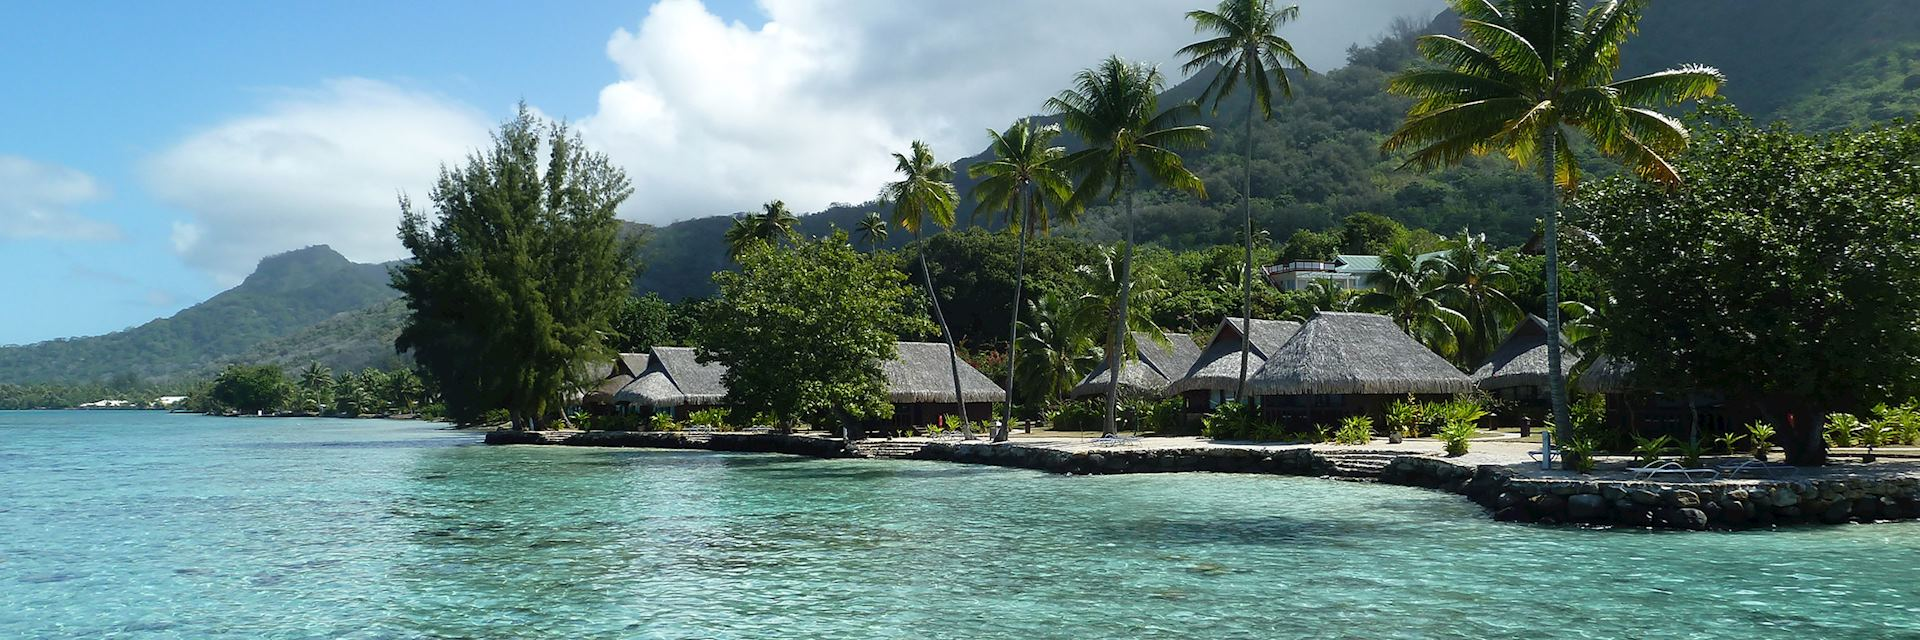 Sofitel Moorea Ia Ora Beach Resort Audley Travel